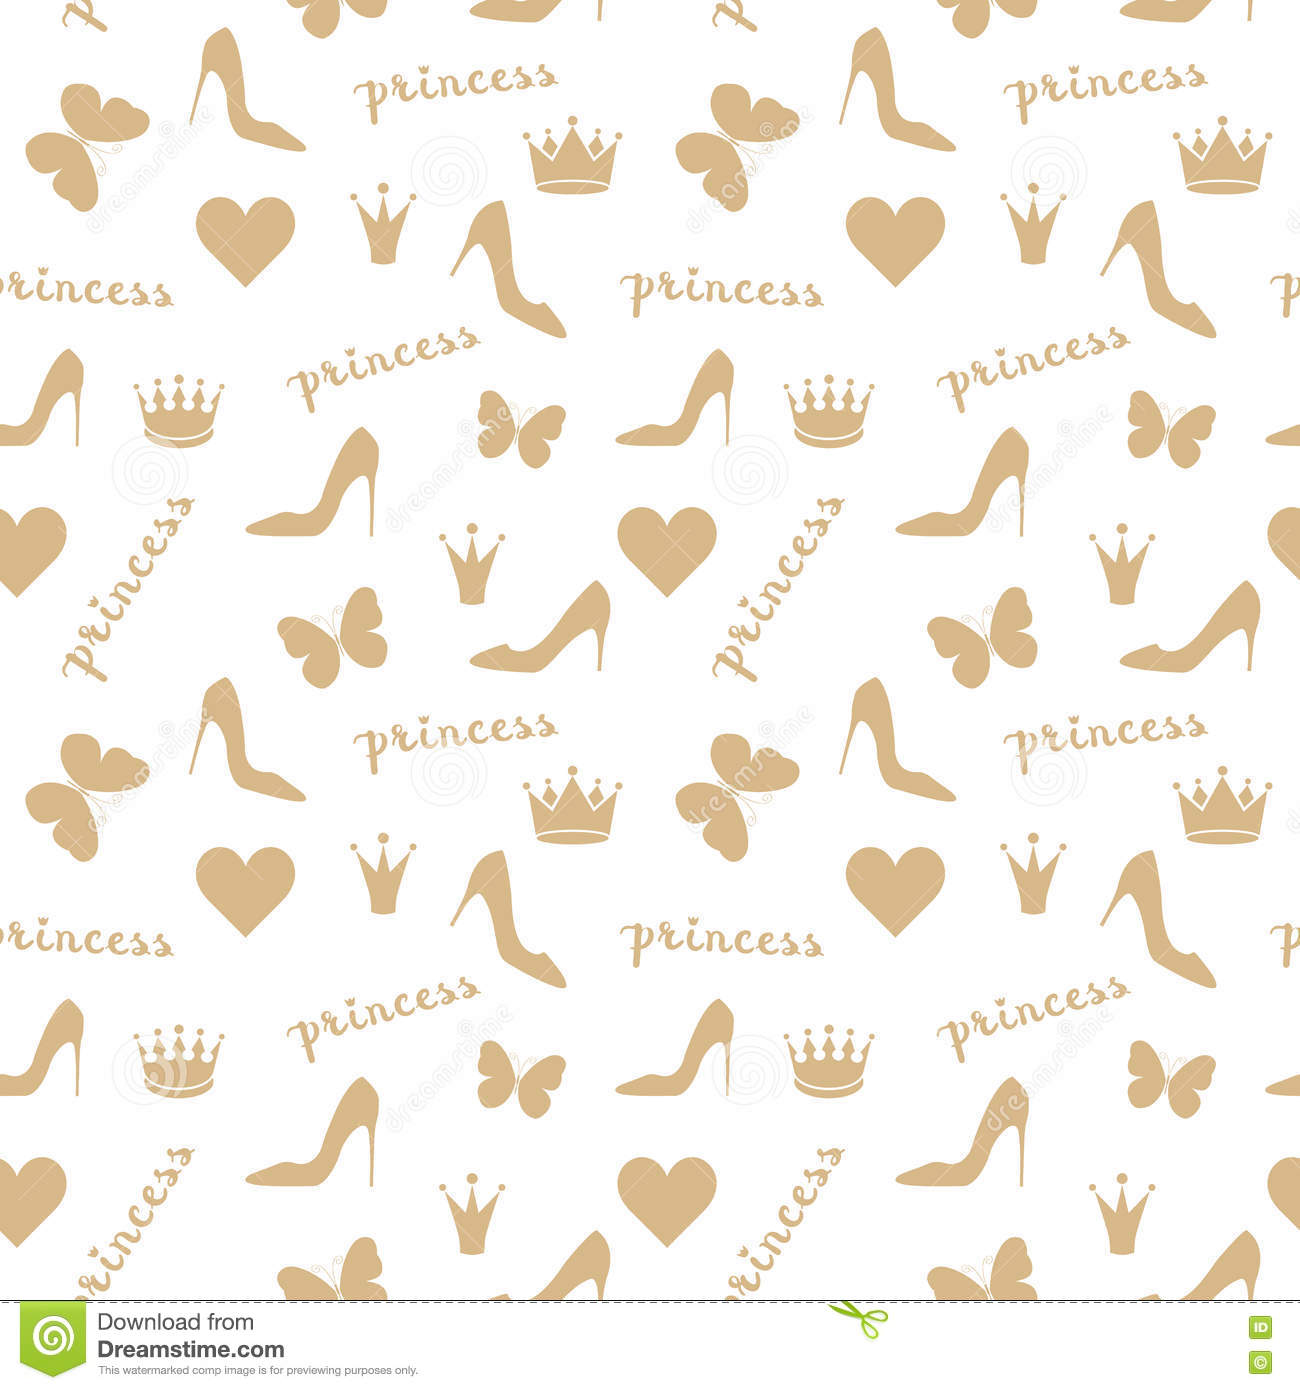 Seamless pattern. Crowns, butterflies, shoes silhouettes